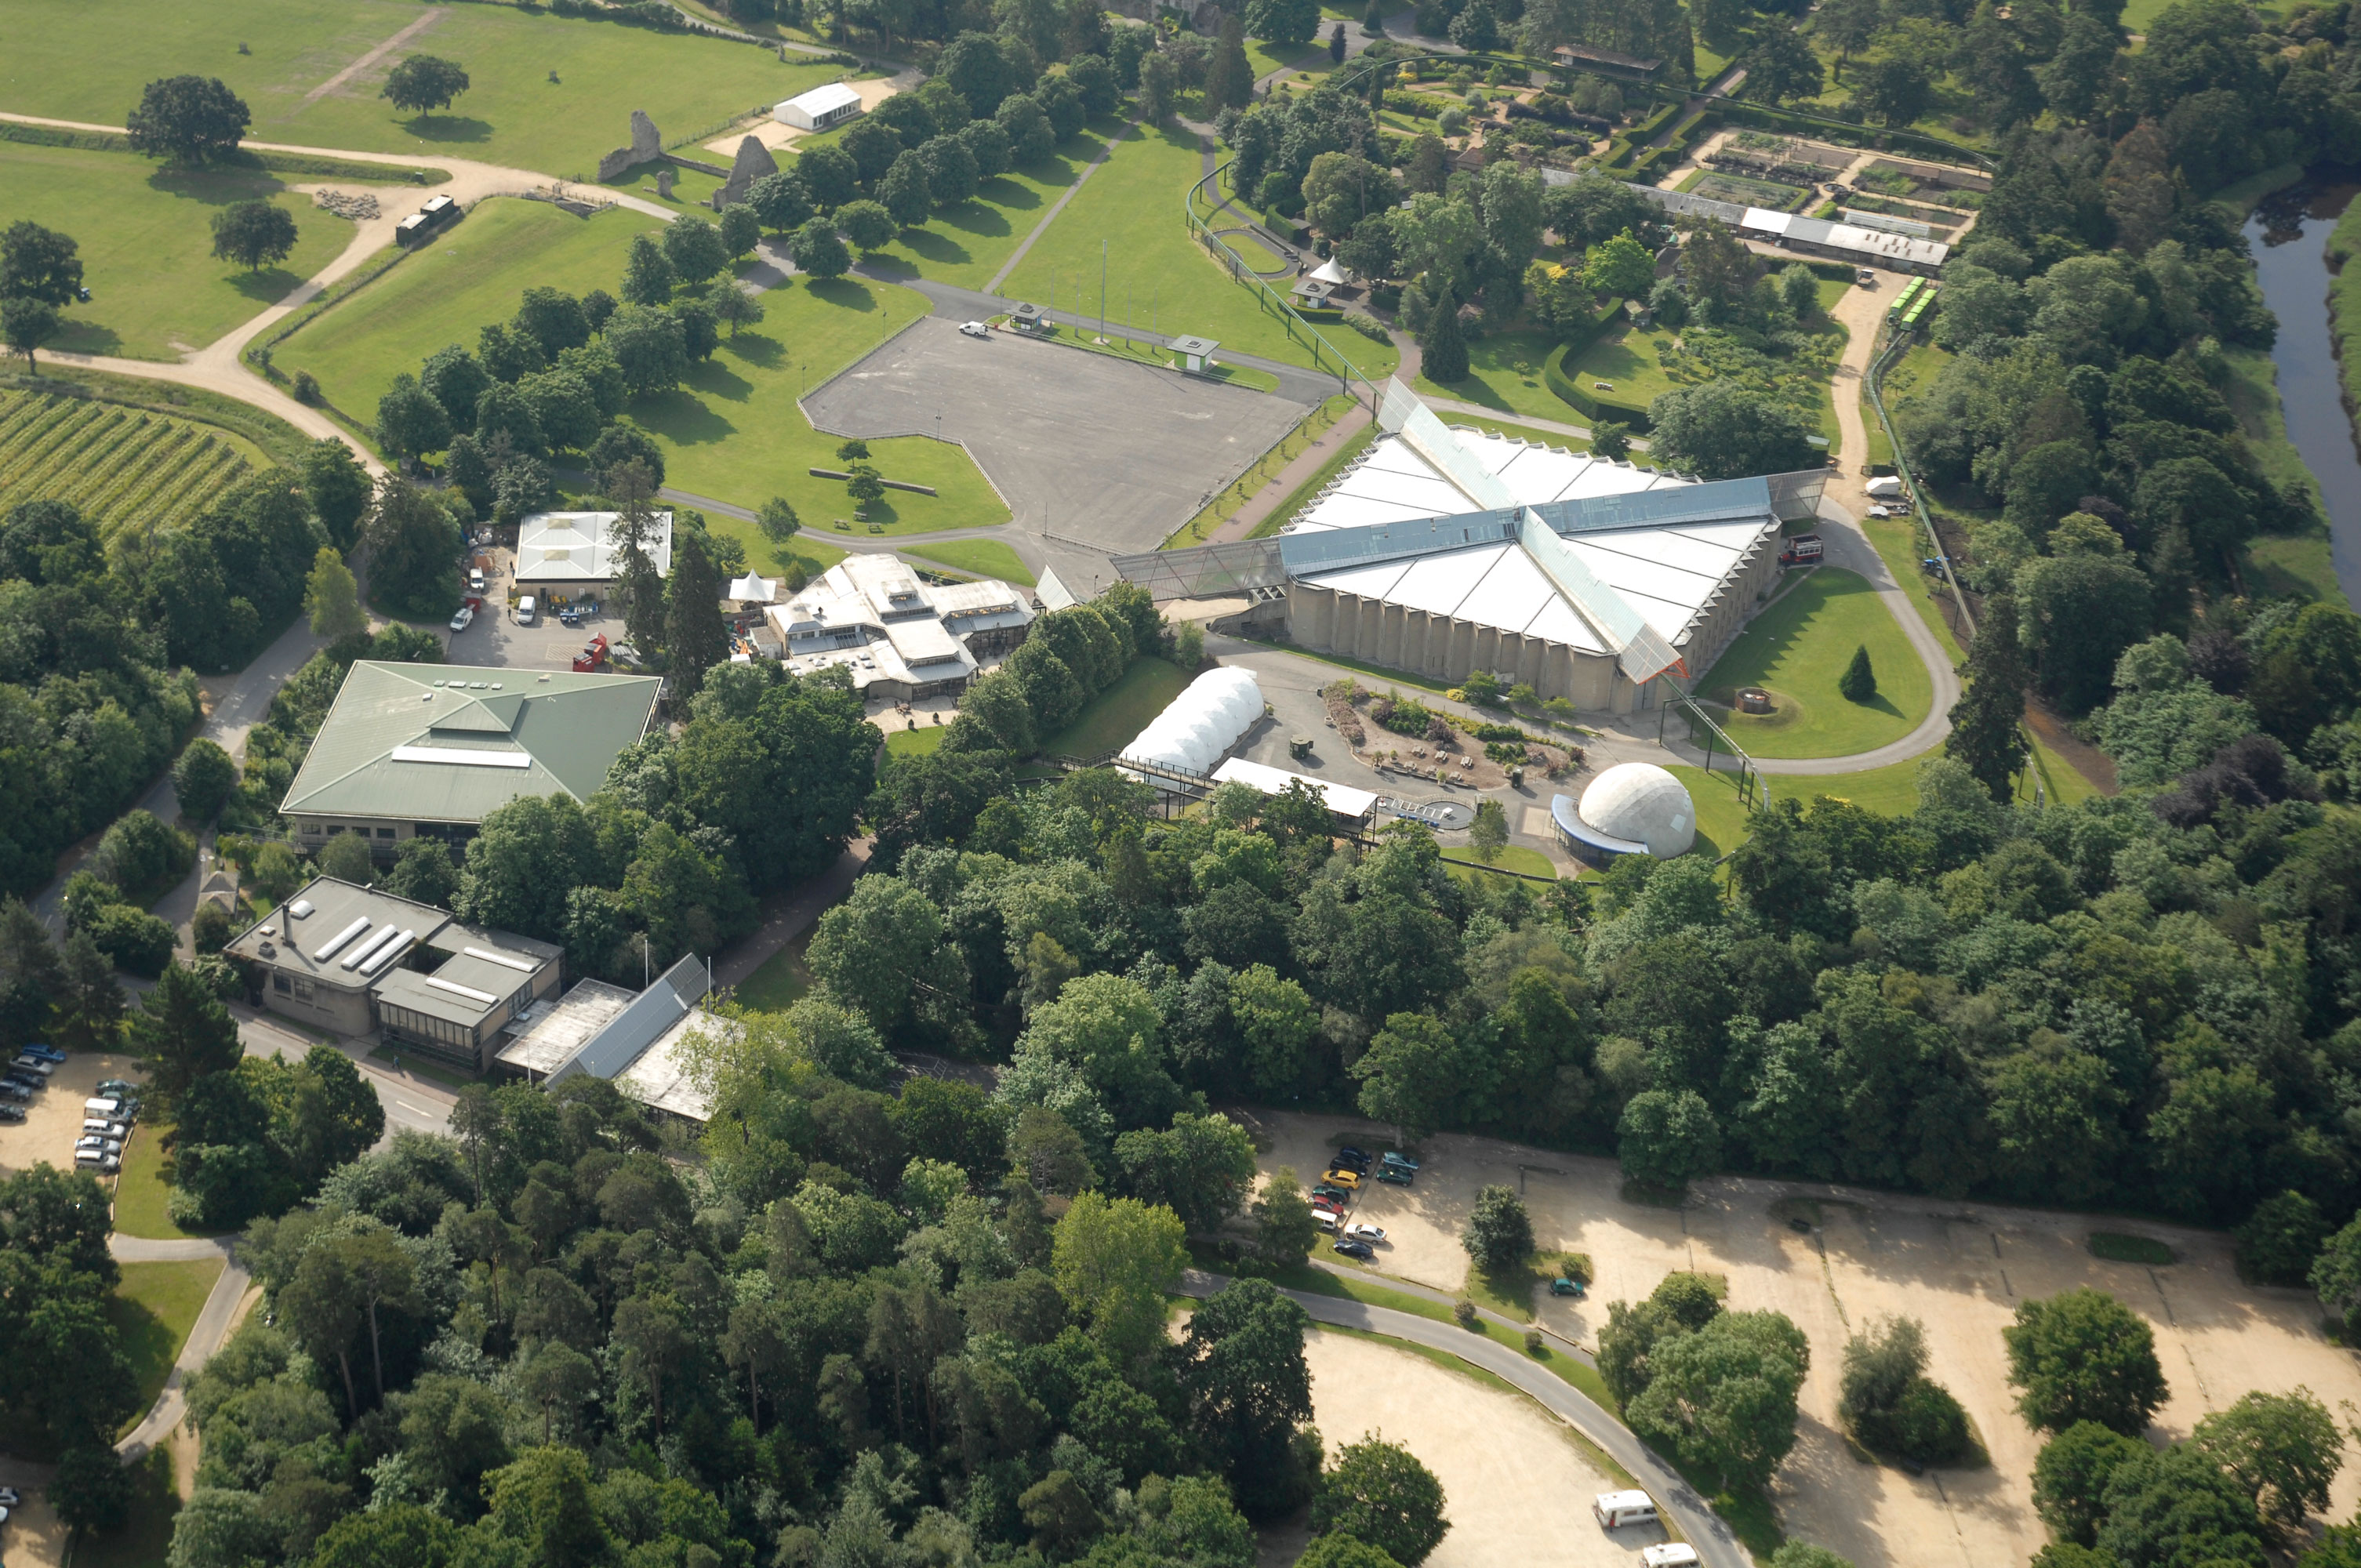 An aerial view of the National Motor Museum and Collections Centre